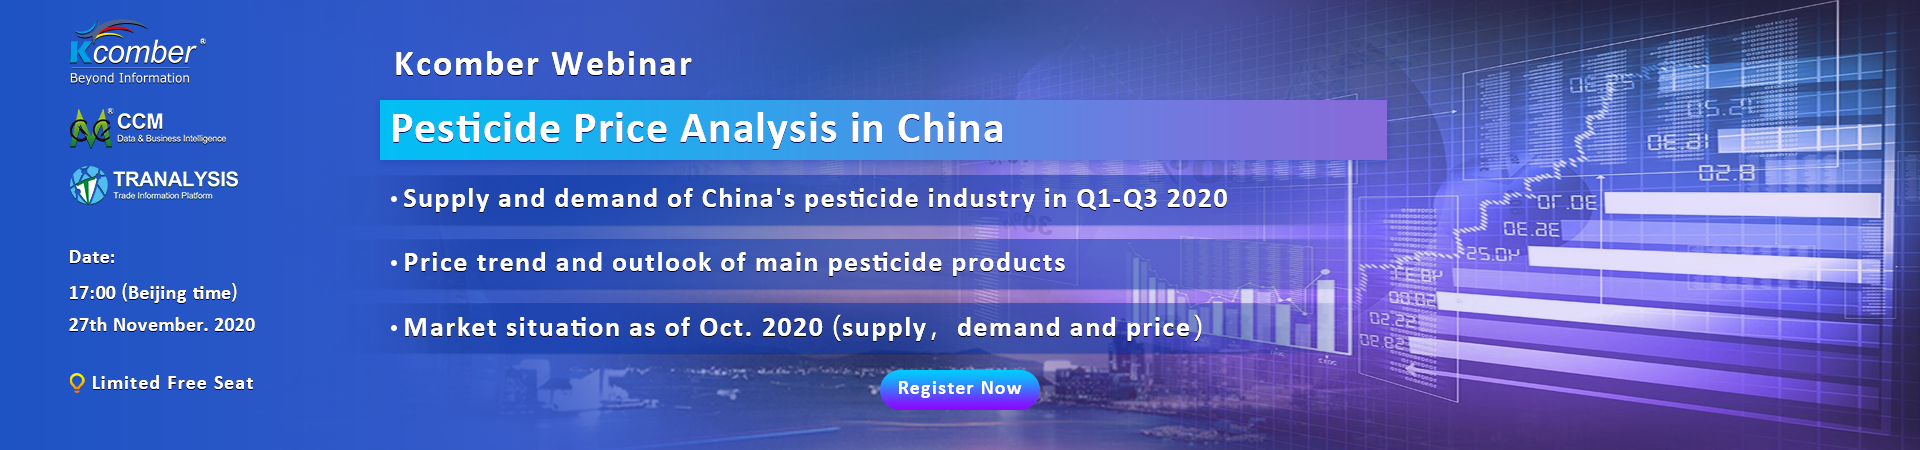 Pesticide Price Analysis in China